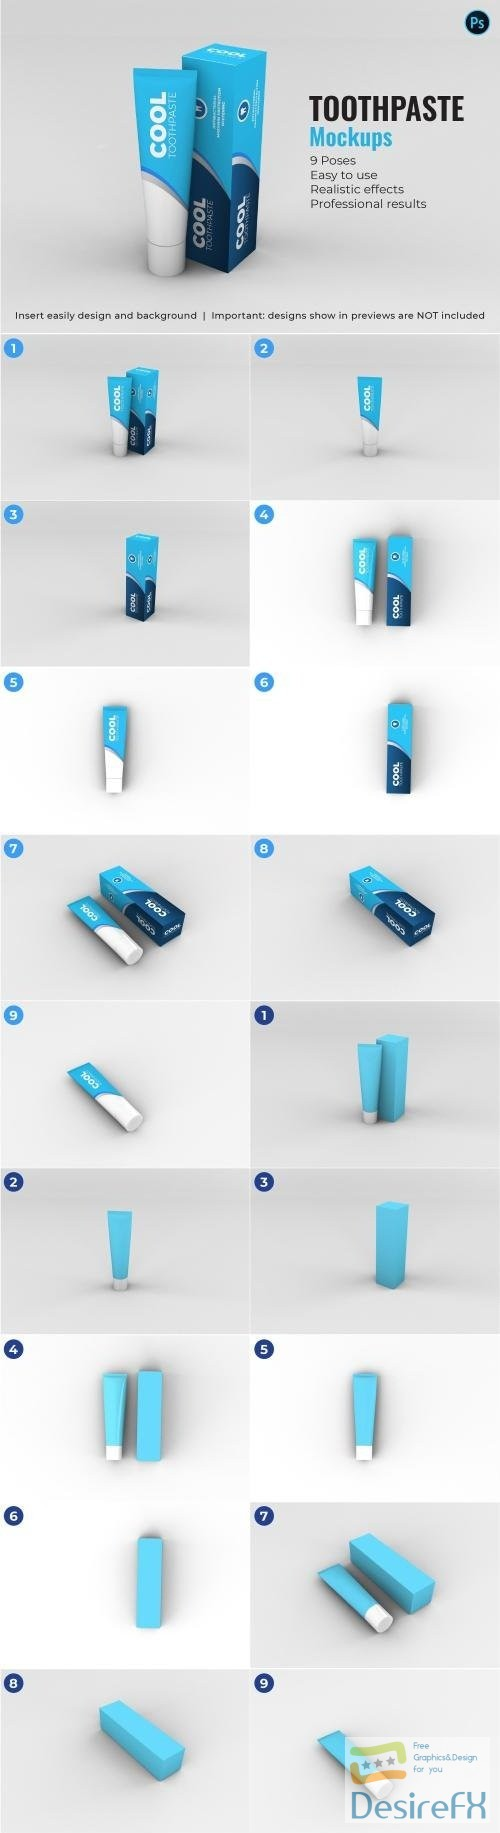 mock-up - Toothpaste Mockups - 9 Poses - 3340924